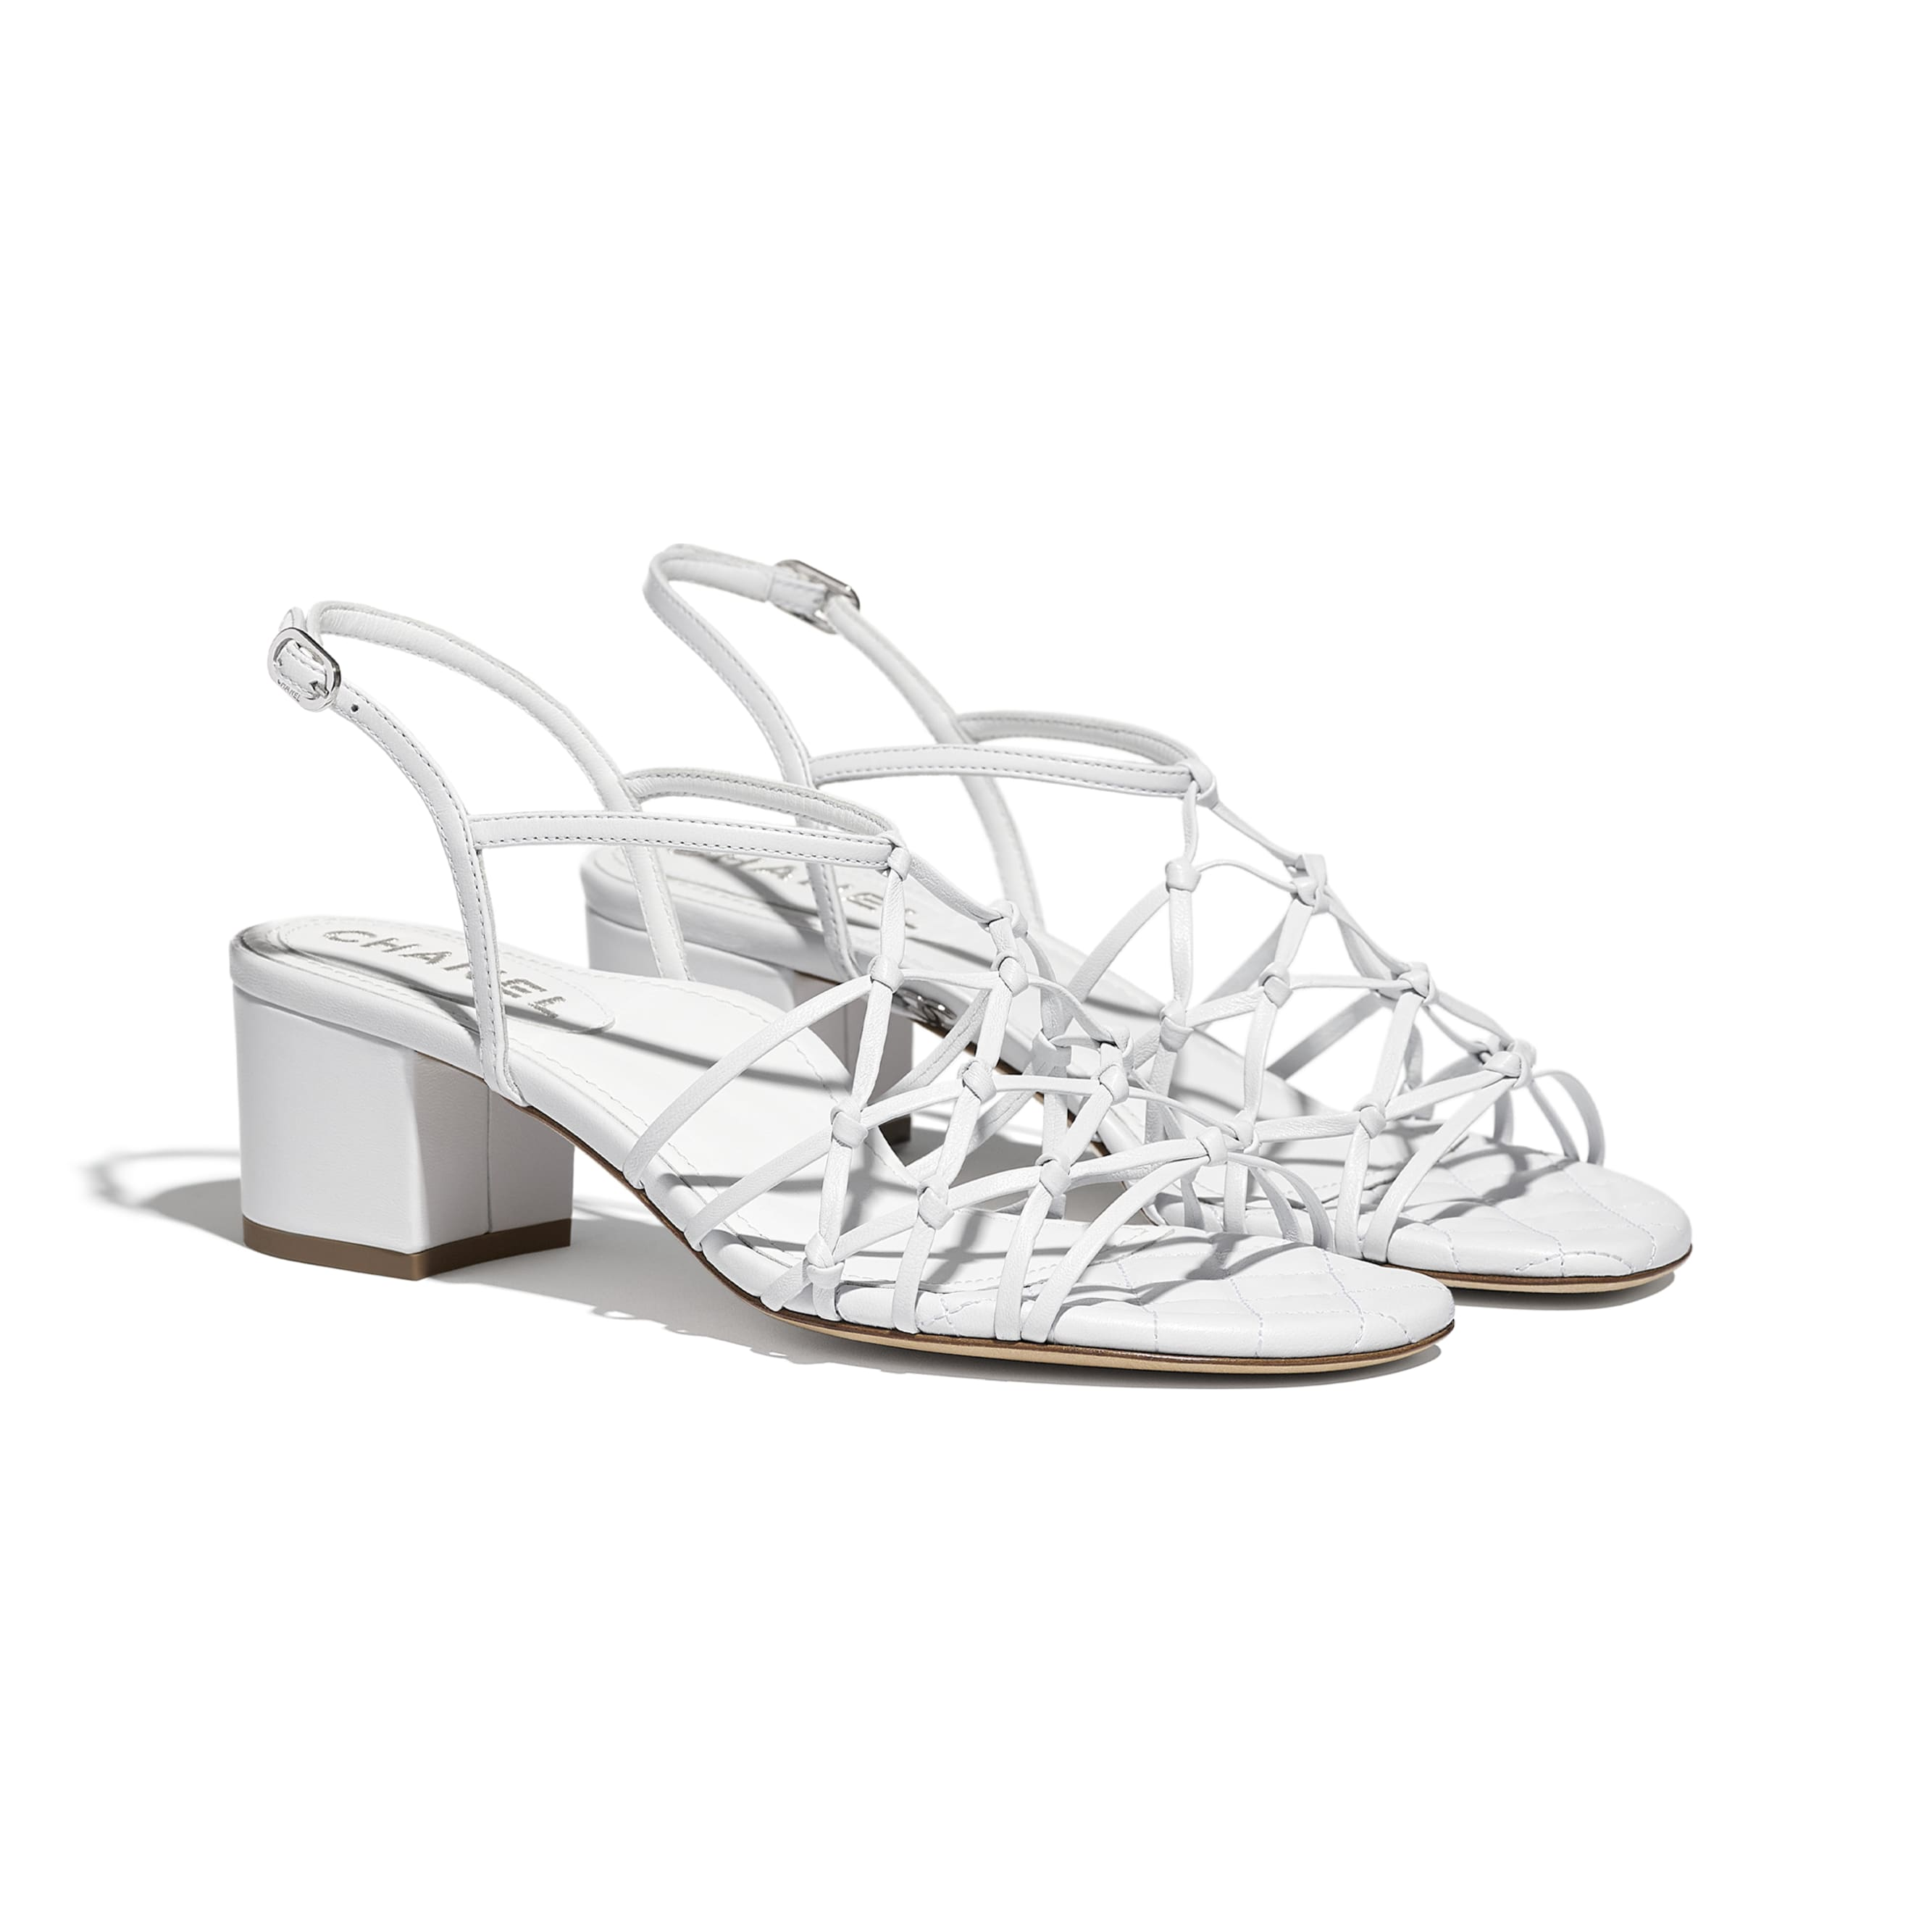 Sandals - White - Lambskin - CHANEL - Alternative view - see standard sized version